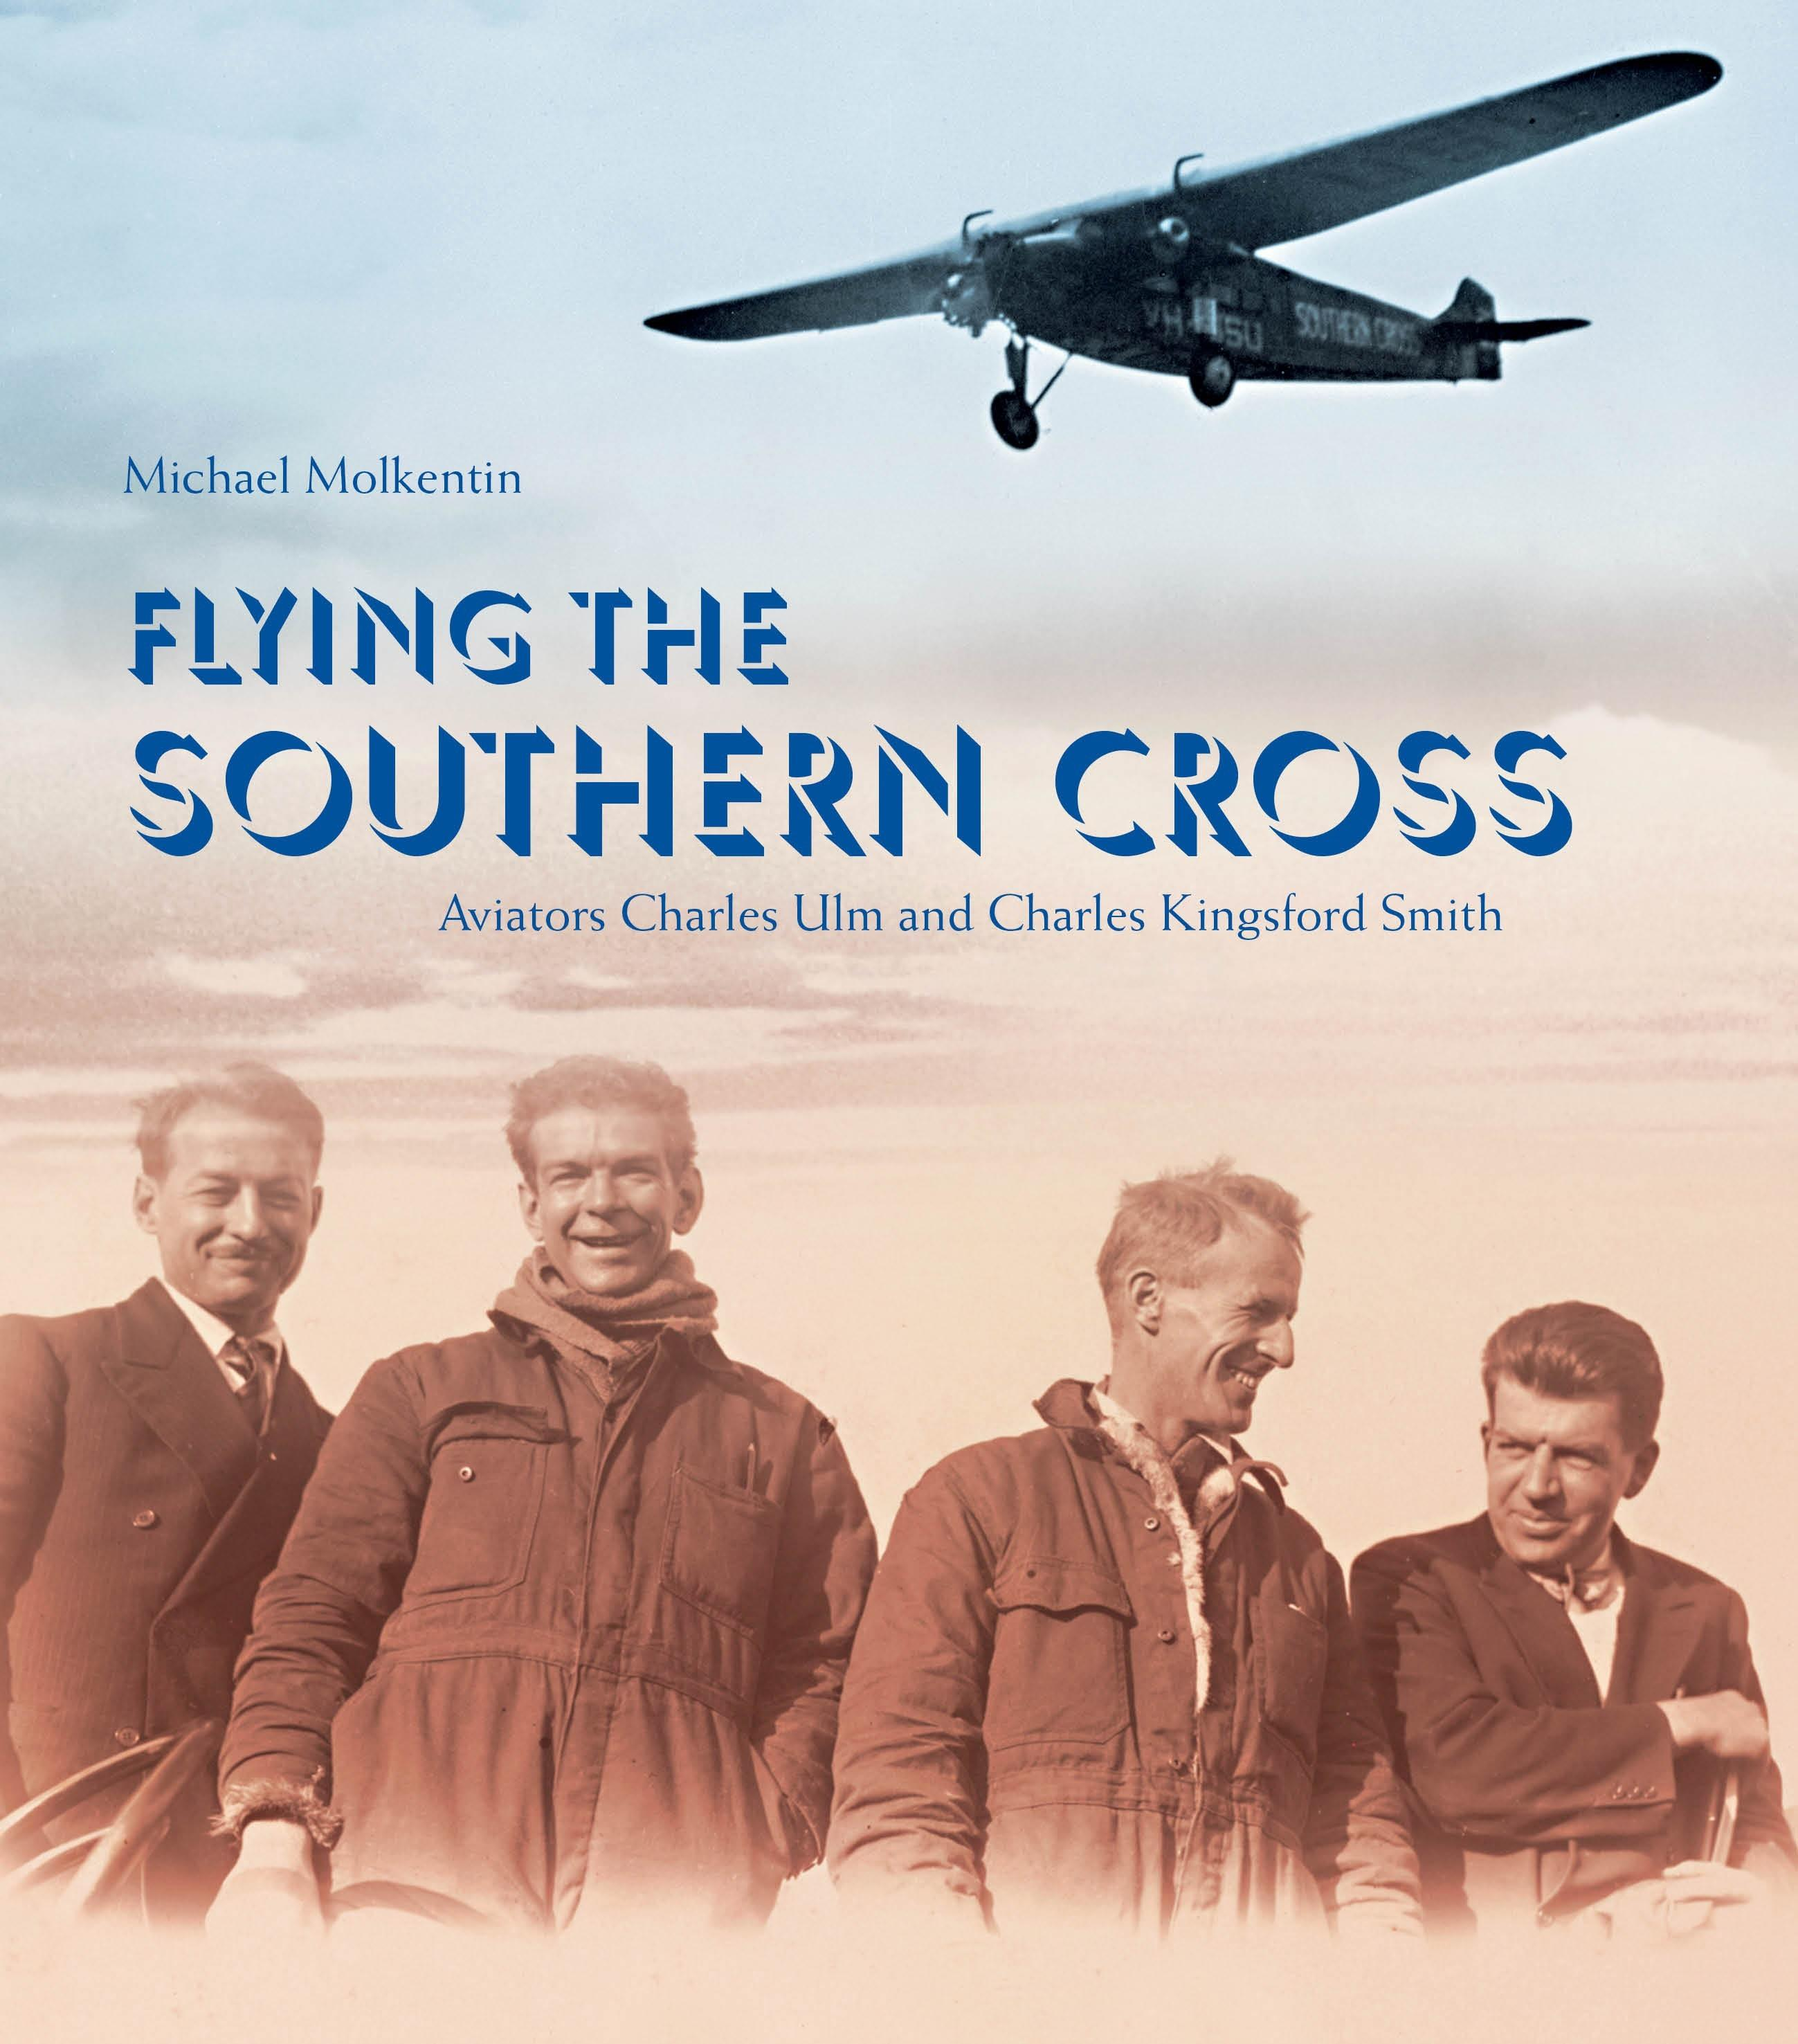 Flying the Southern Cross: Aviators Charles Ulm and Charles Kingsford Smith